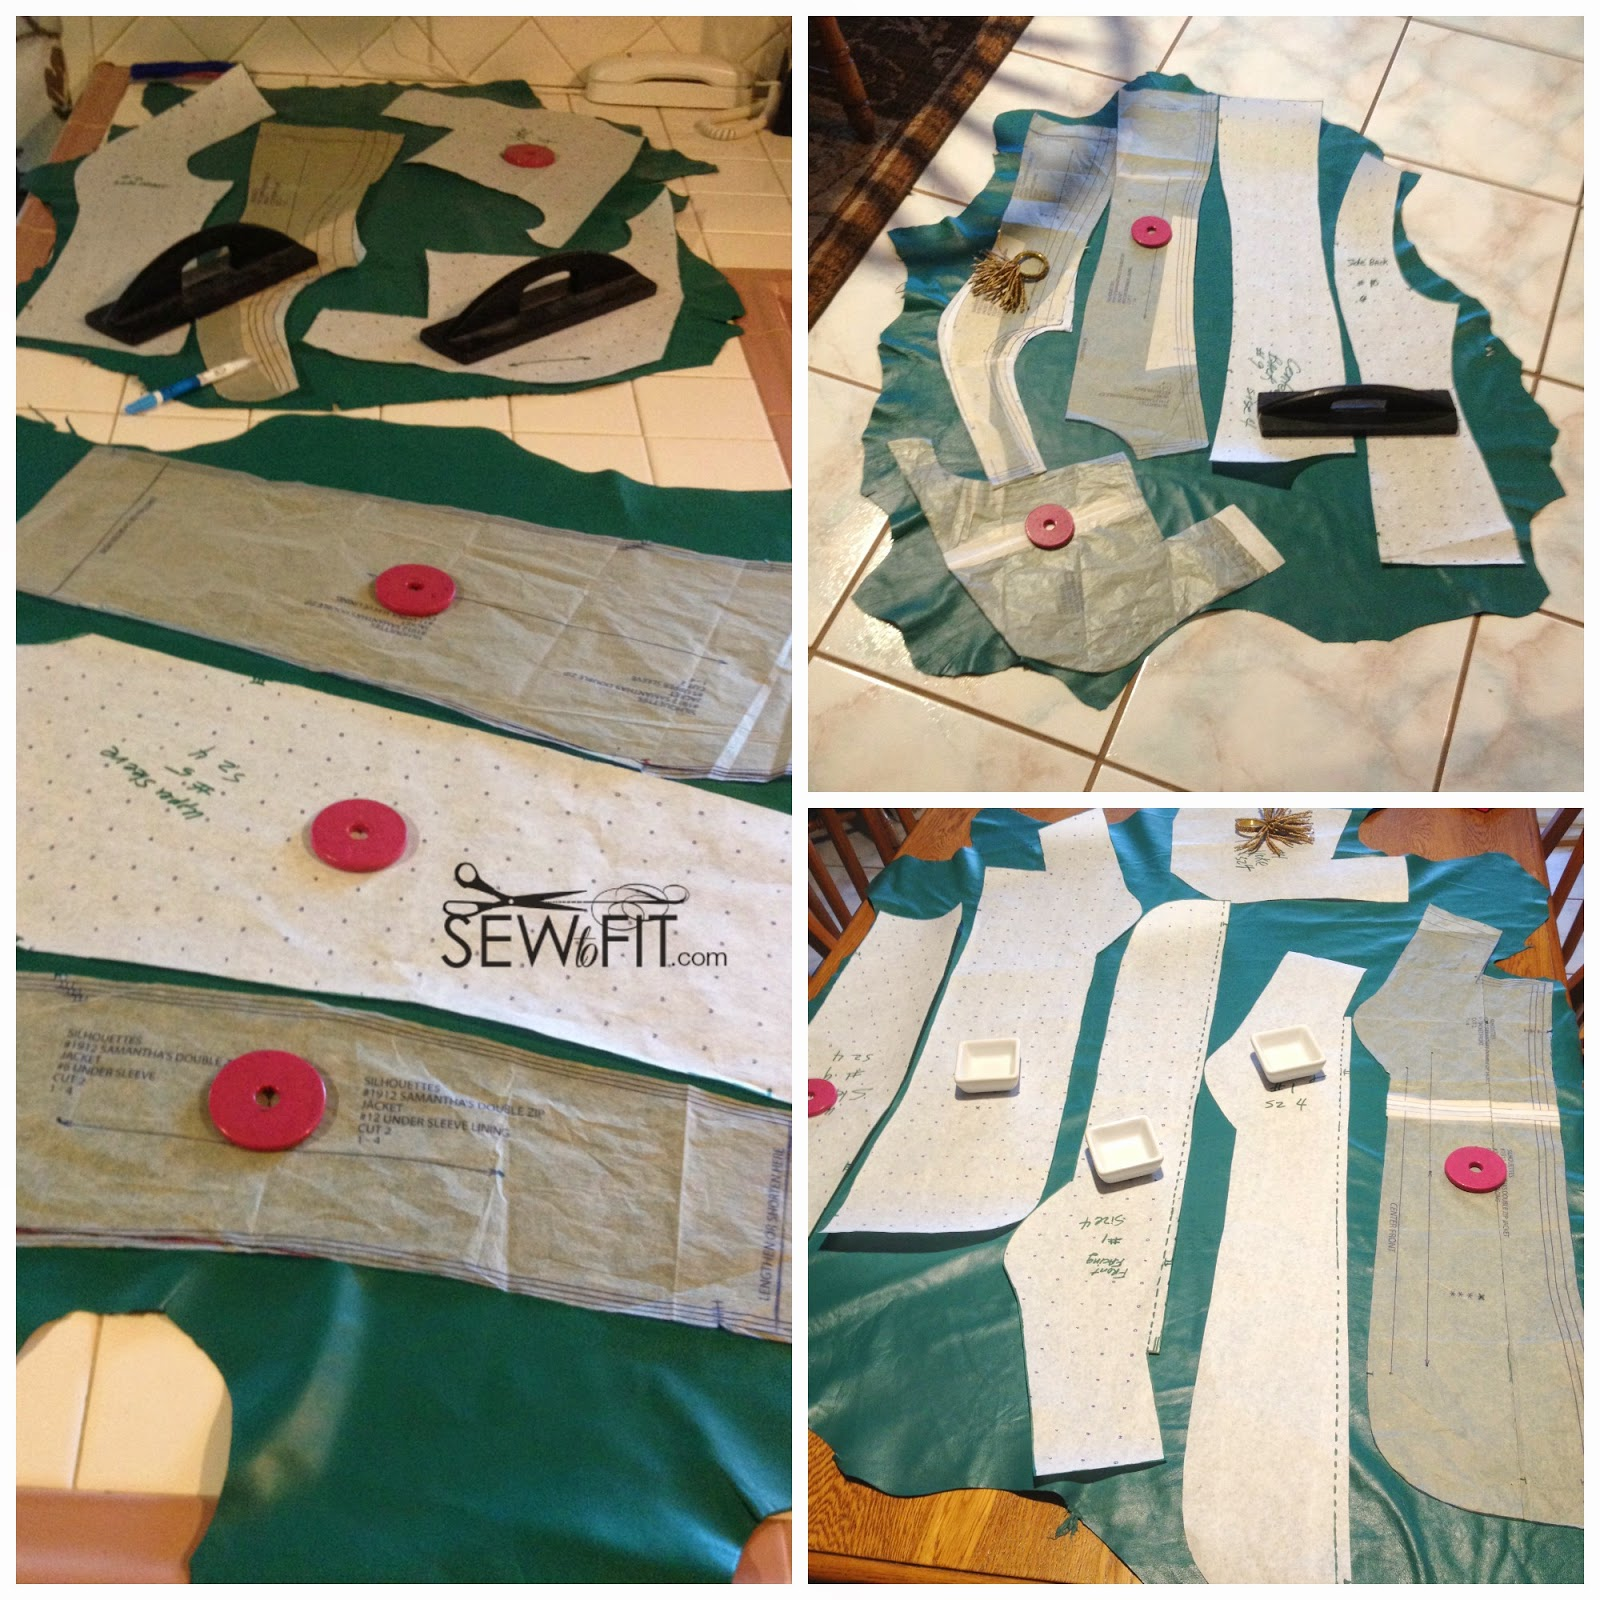 lambskin teal leather, sewing with leather, layout and cutting leather with sewtofit.com